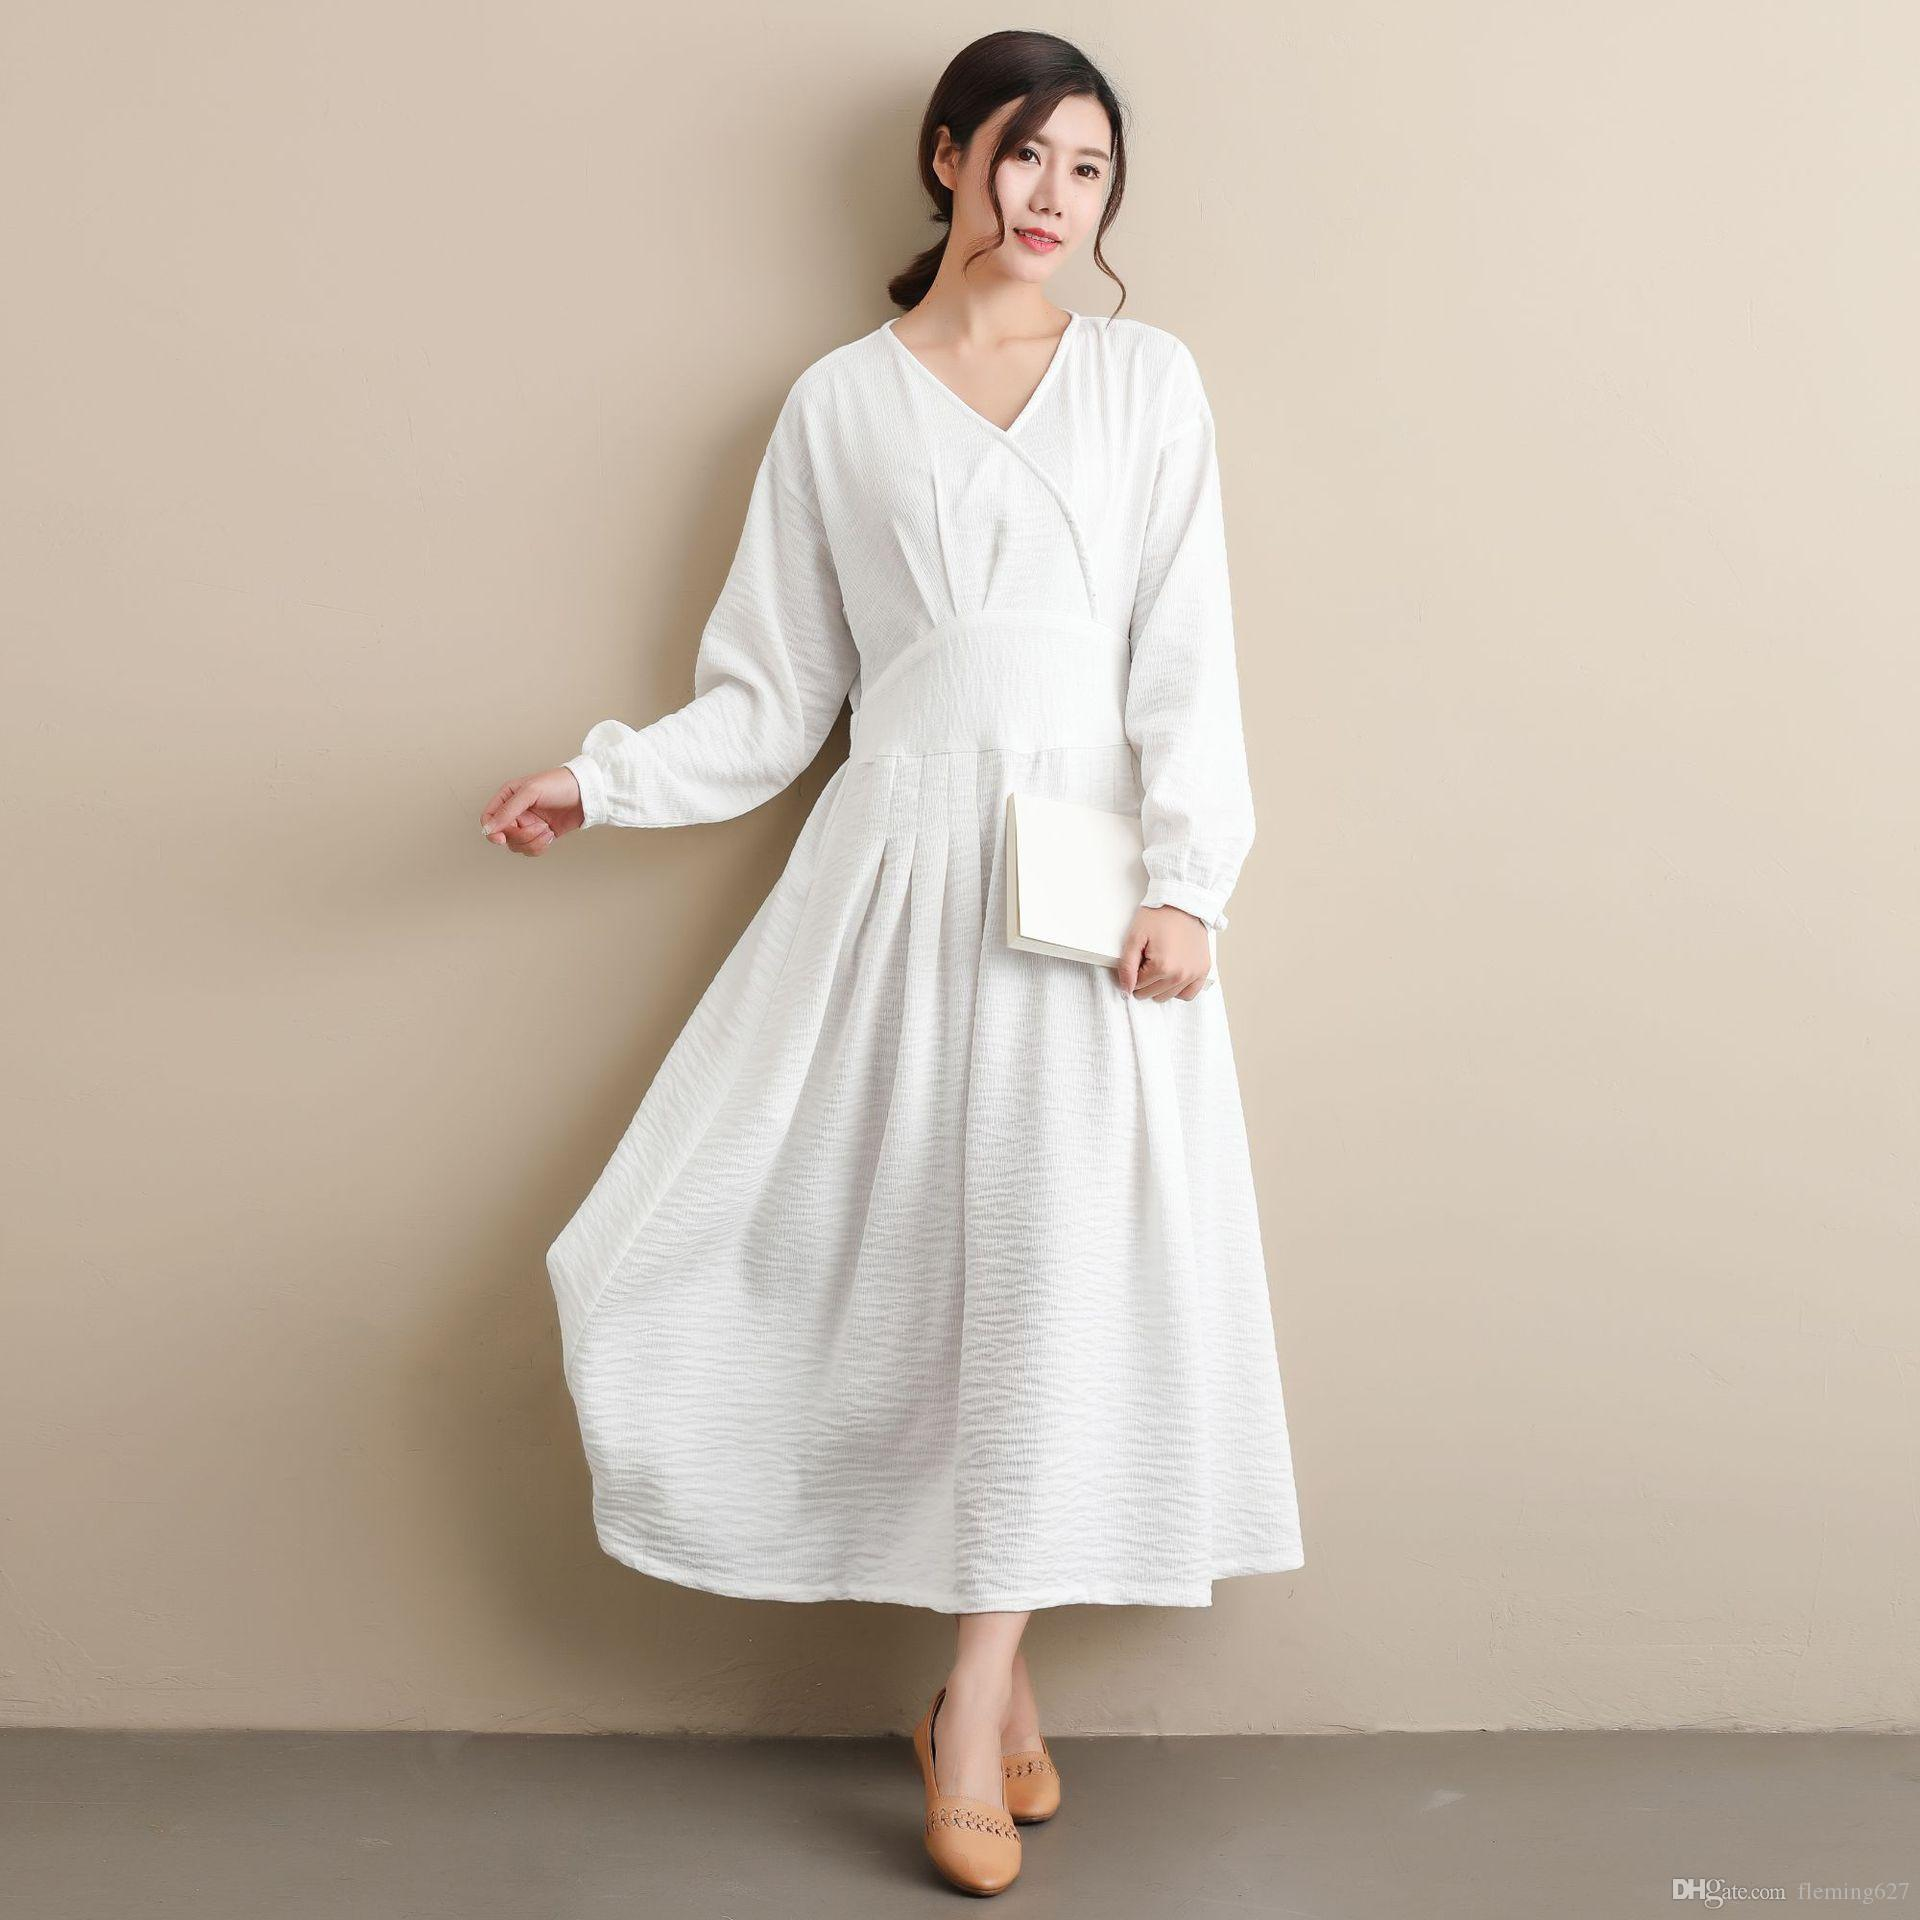 836f43e03a7 Autumn Waist Belt Folk Dress The Republic Of China Style Clothing Female  Students RETRO Art Solid Color Unique Polyester Linen Dress White Cocktail  Dress ...